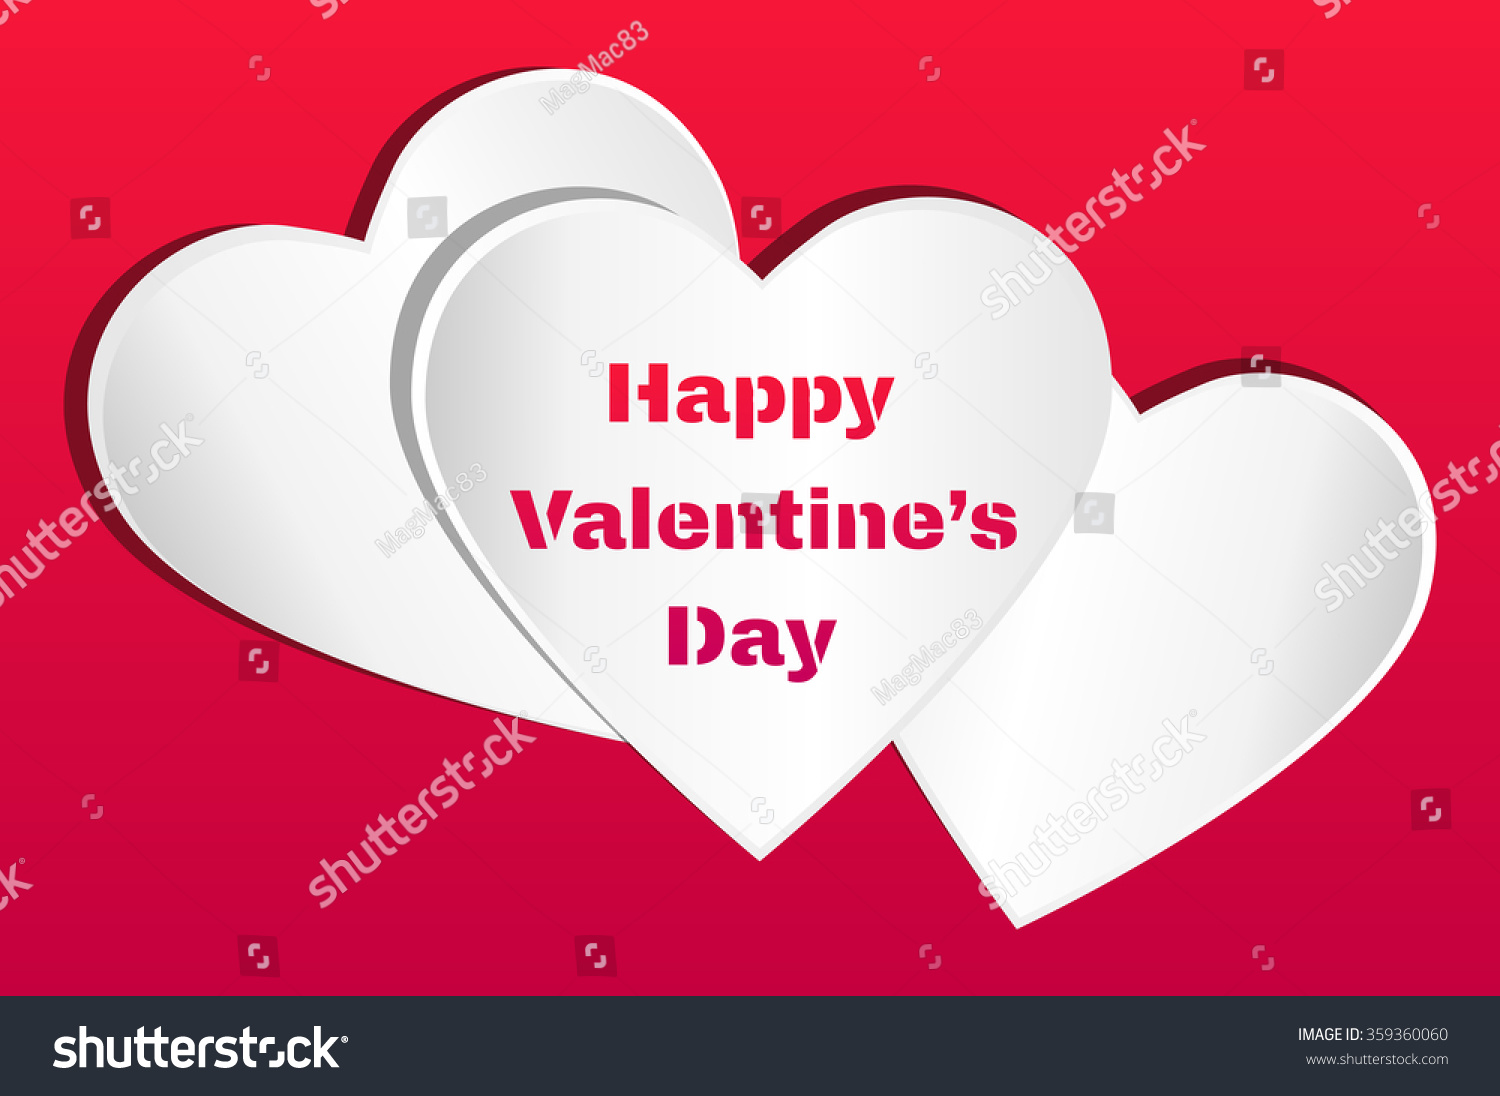 Valentines card three white hearts happy stock vector 359360060 valentines card three white hearts with happy valentine s day text on a red kristyandbryce Images